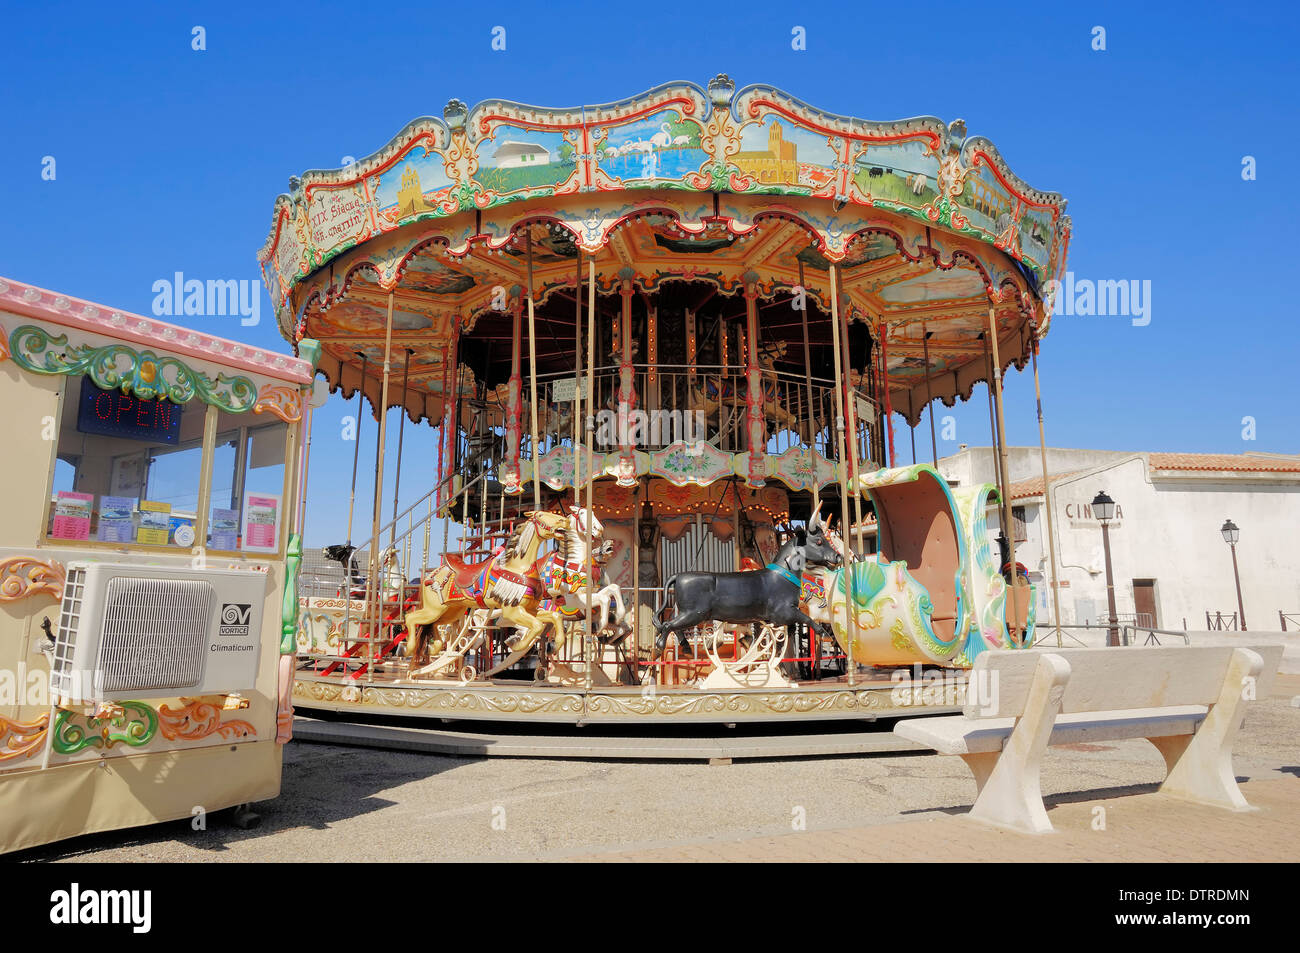 carrousel les saintes maries de la mer camargue bouches du rhone stock photo royalty free. Black Bedroom Furniture Sets. Home Design Ideas